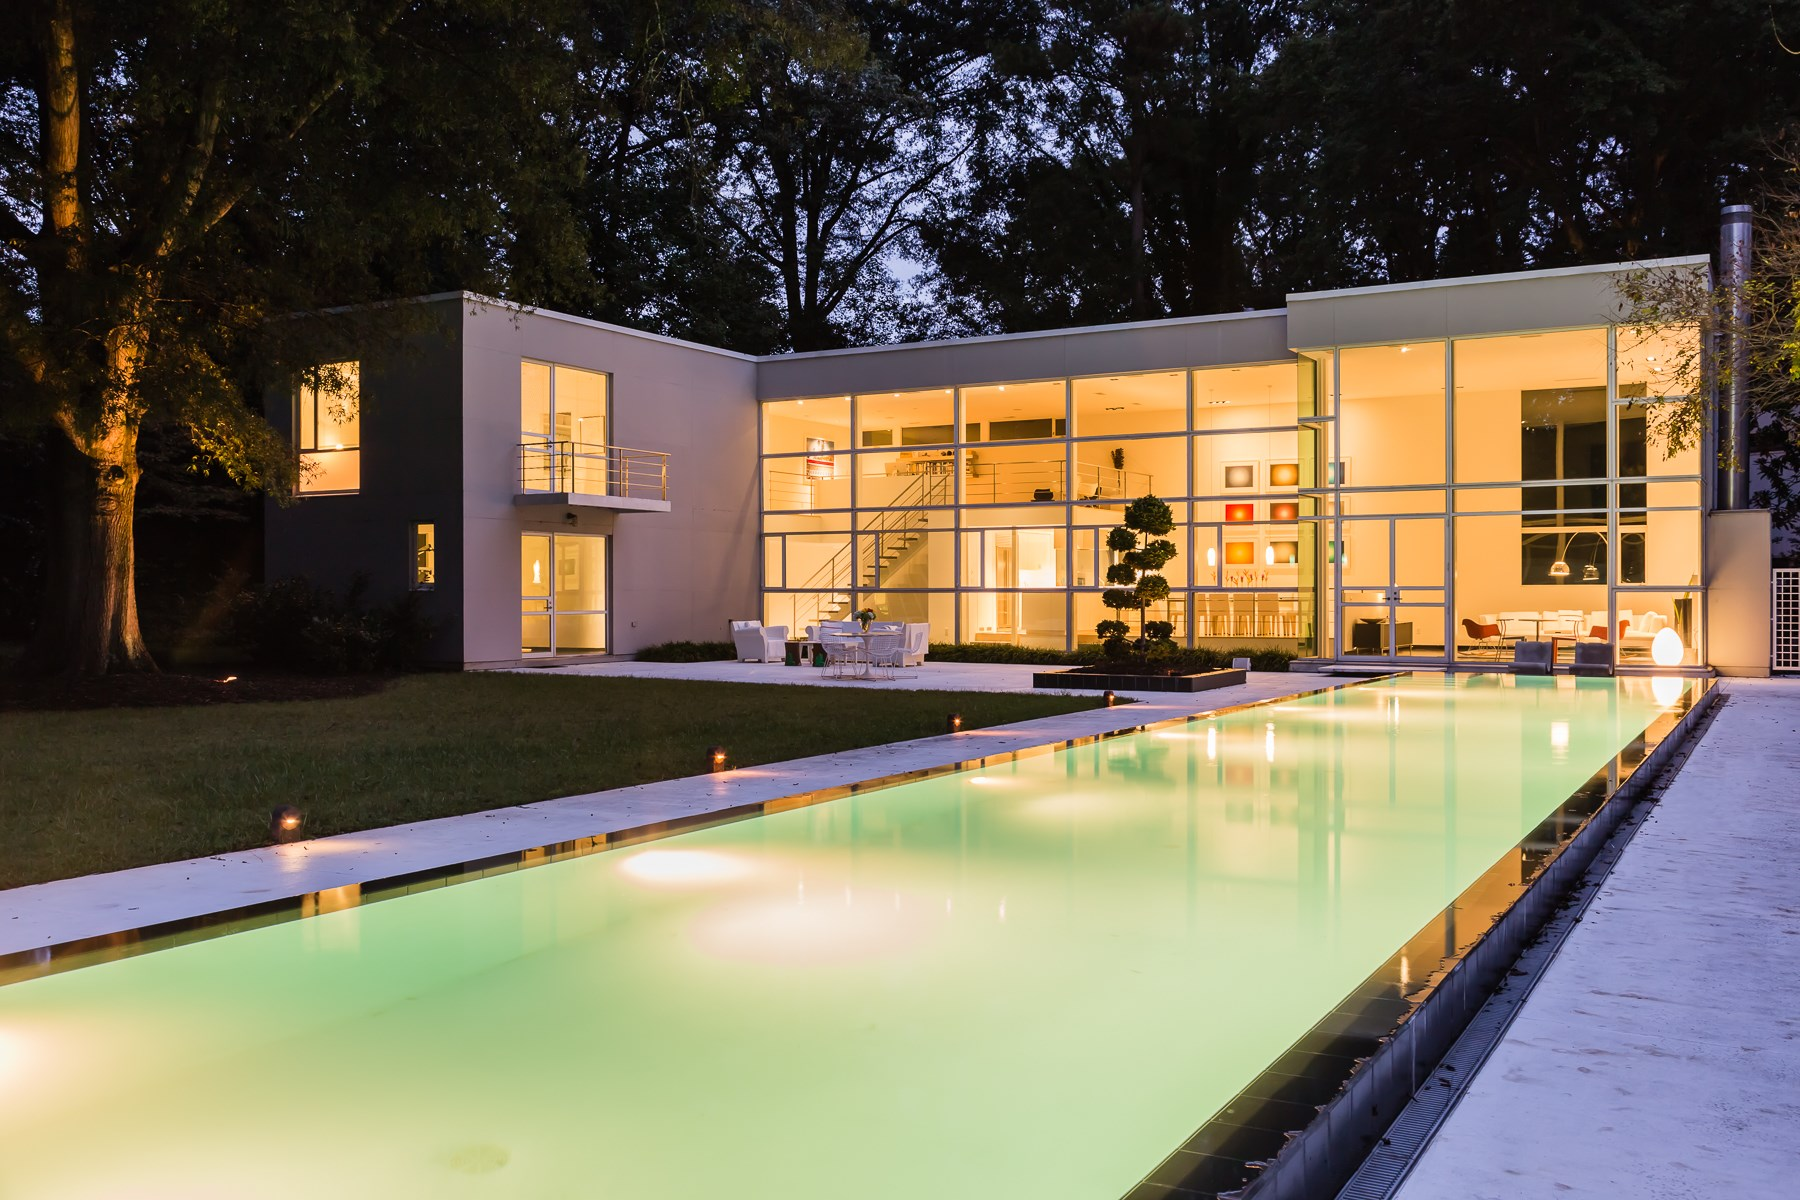 Single Family Home for Sale at Modernist Masterpiece 811 Bryan Street Raleigh, North Carolina, 27605 United StatesIn/Around: Cary, Durham, Chapel Hill